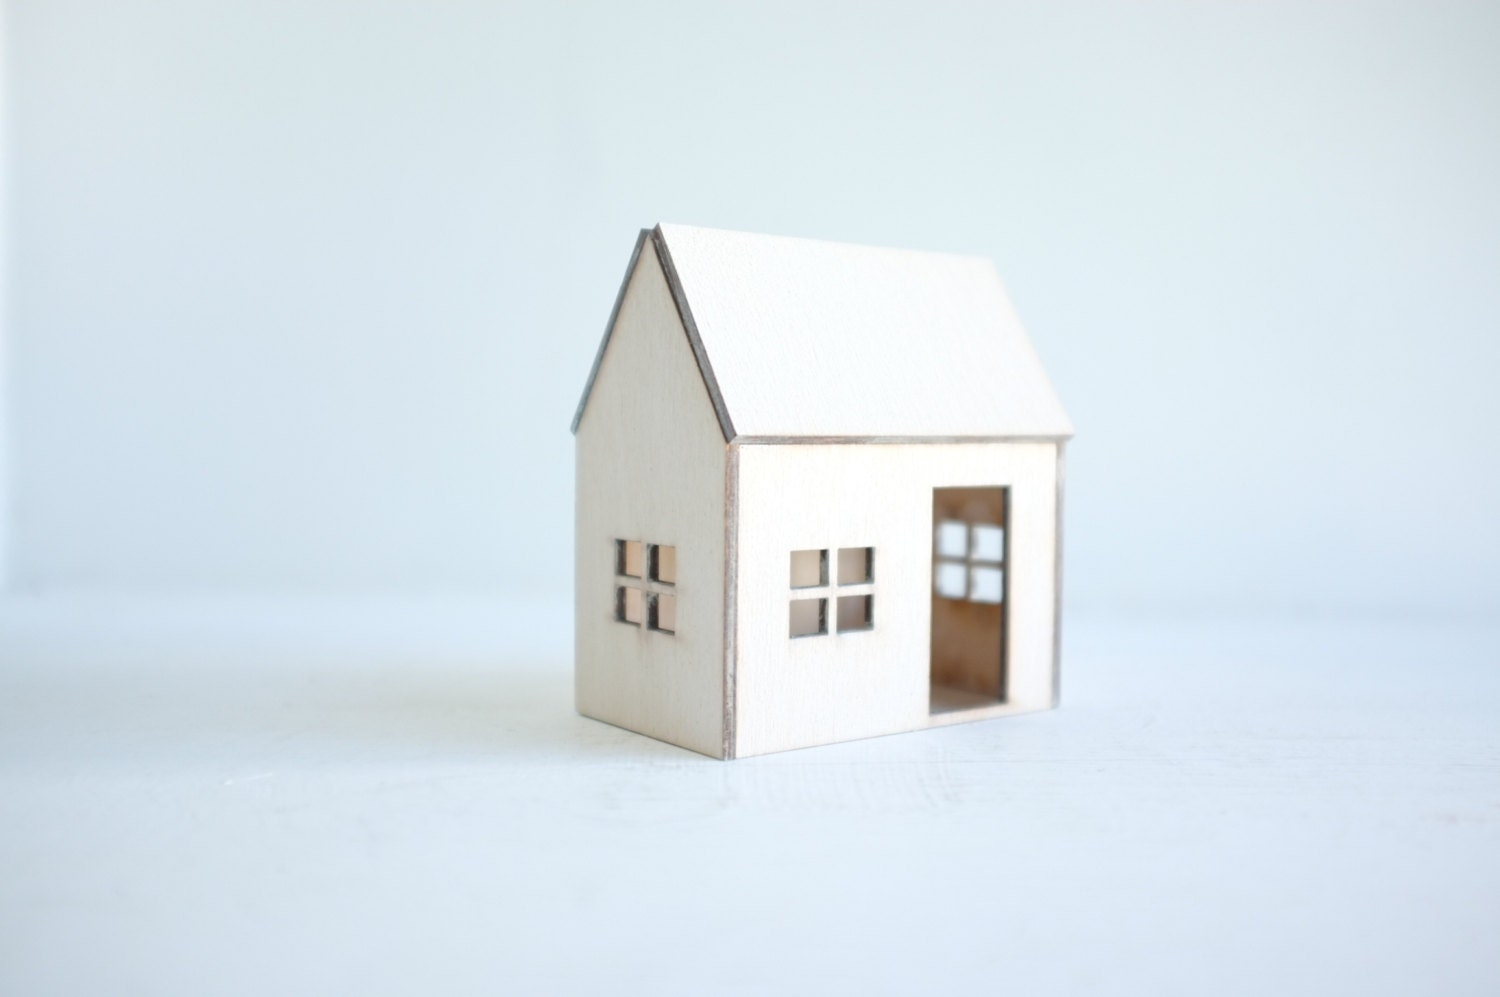 Whitewashed miniature house - small winter white architecture - little wooden geometric structure in ivory - 2of2